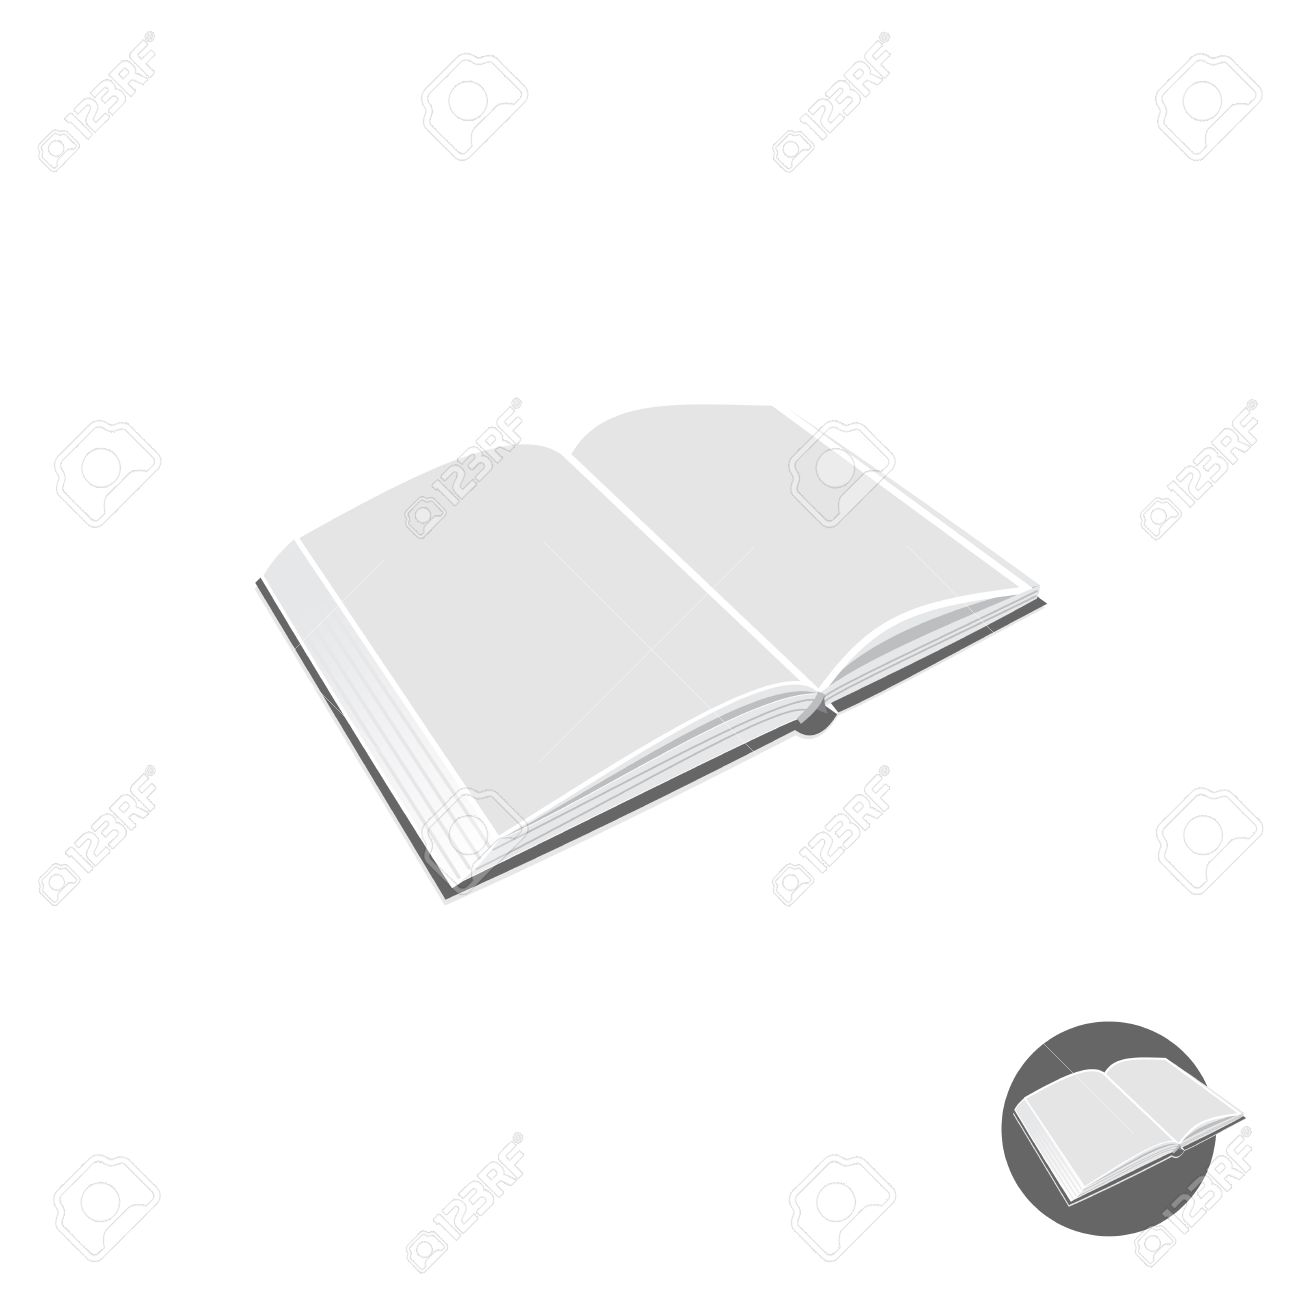 open book 3d perspective vector illustration royalty free cliparts